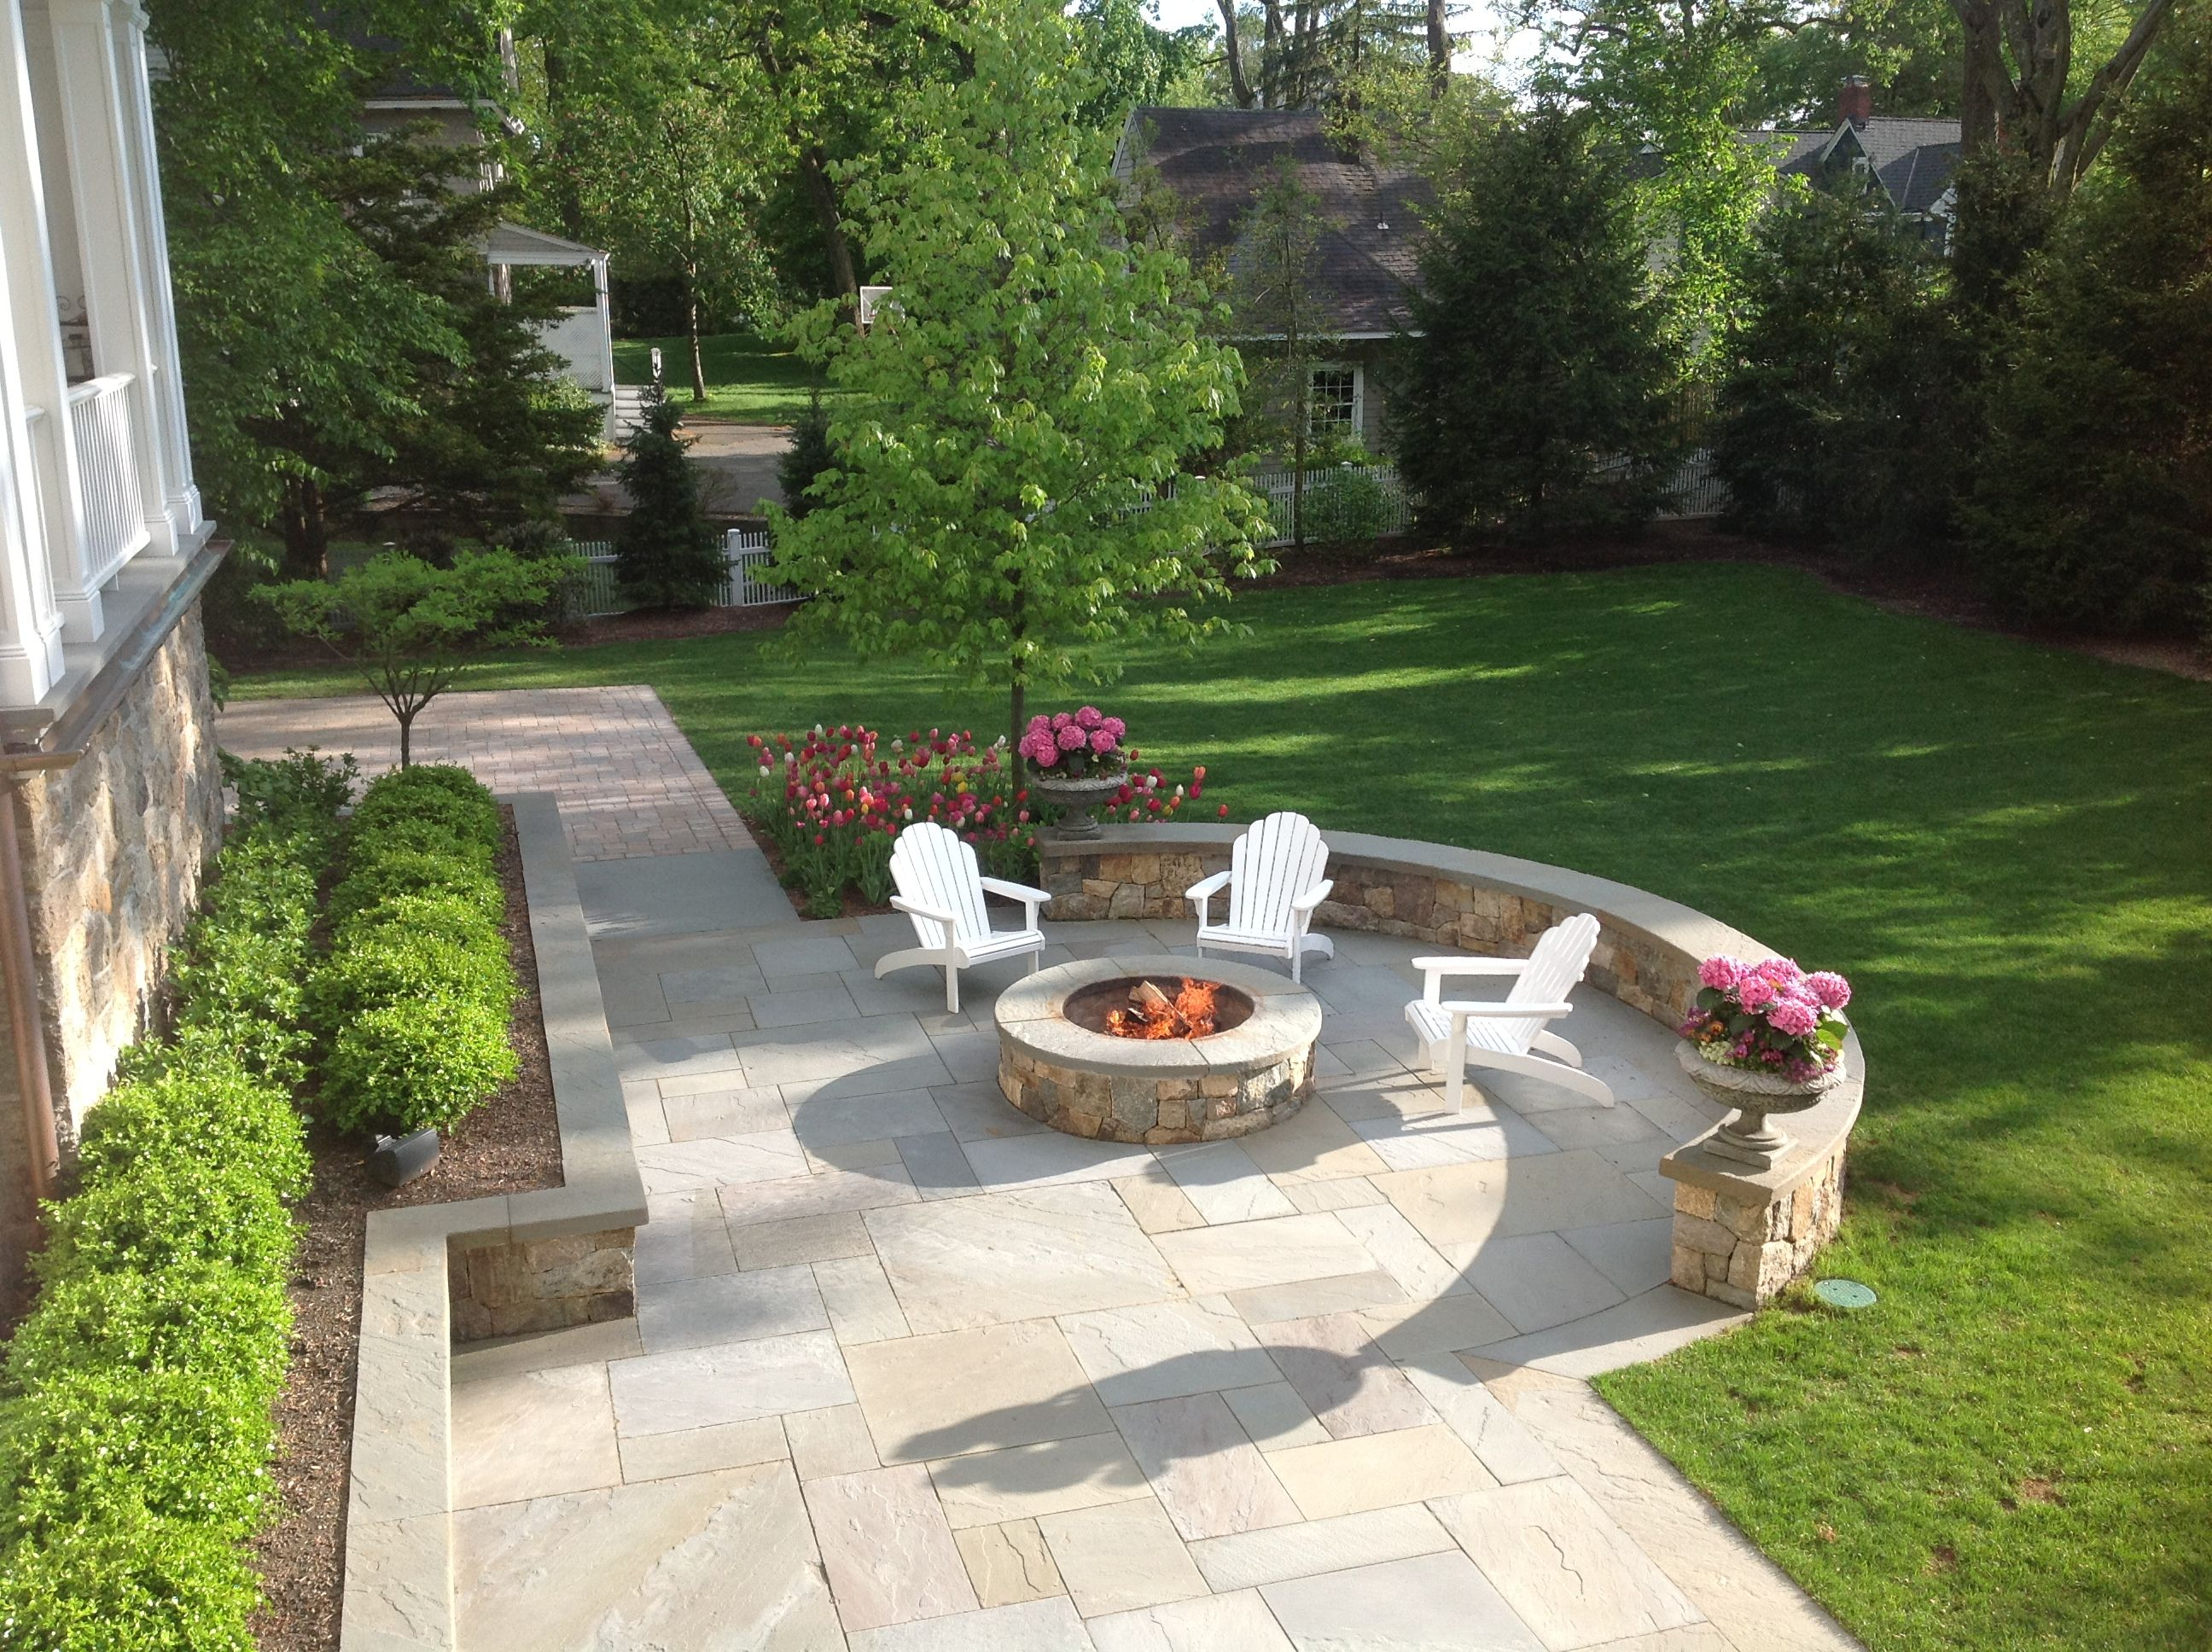 exceptional award winning patio designs #5: Image result for award winning patio designs